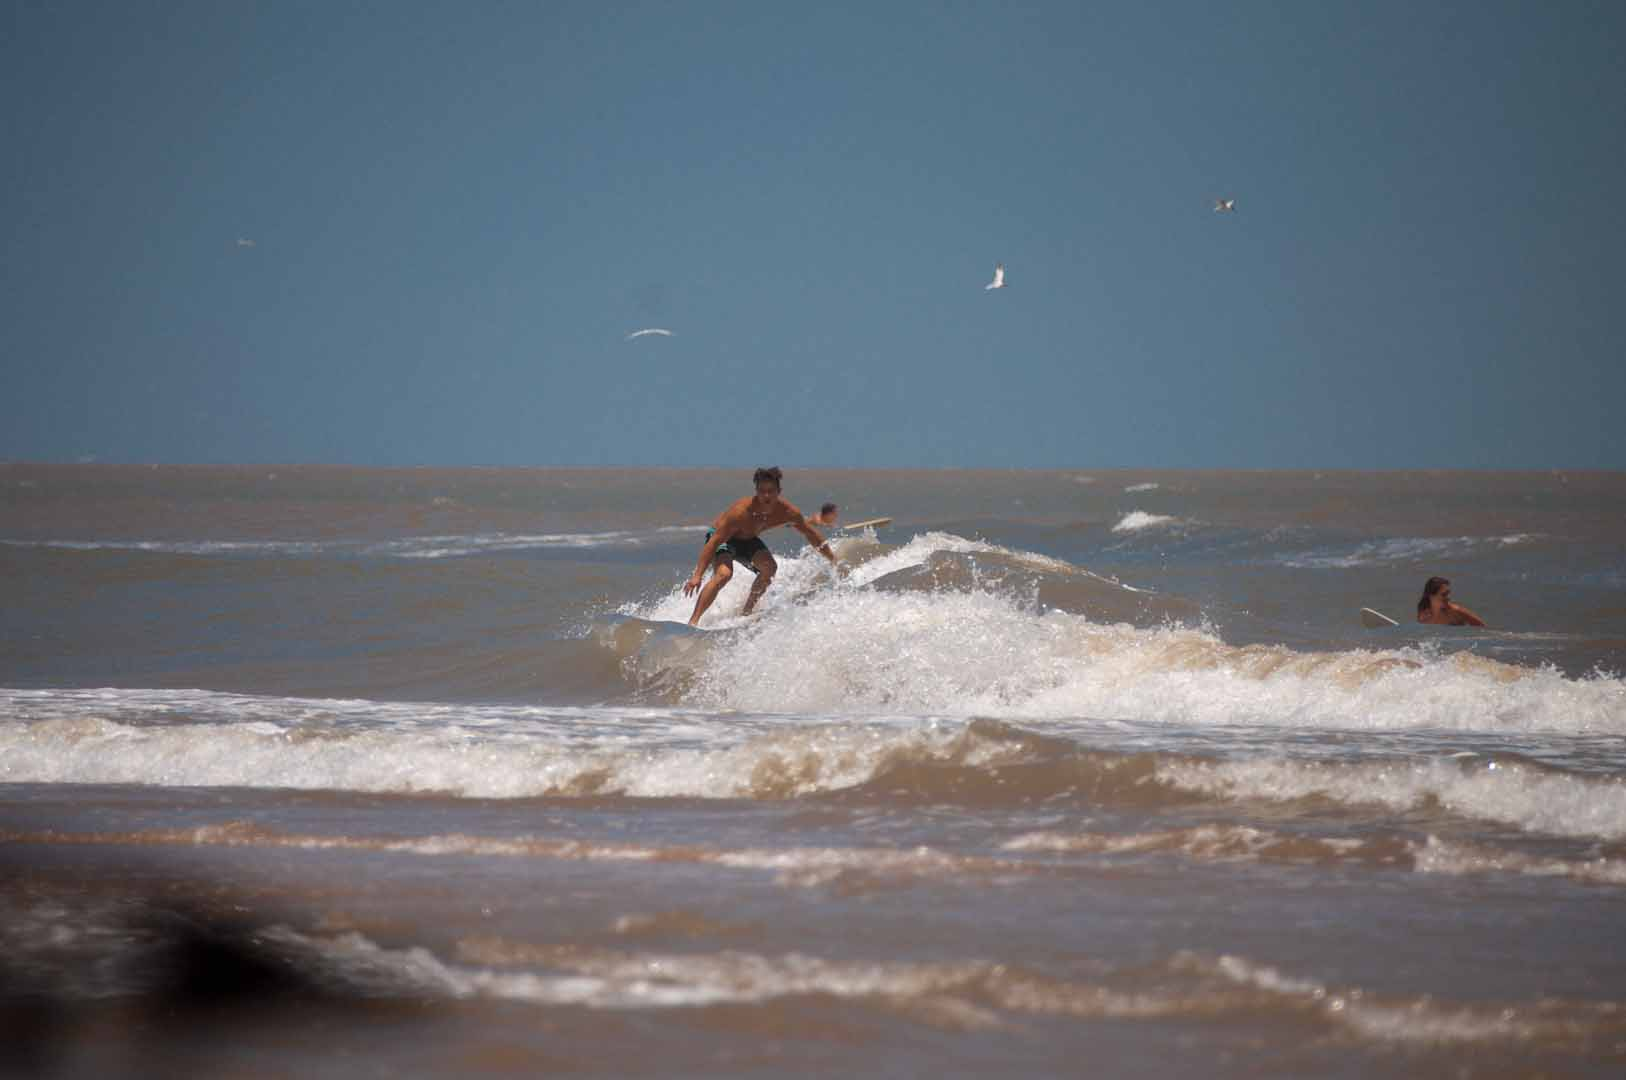 SurfsideLateJune_20150627_394